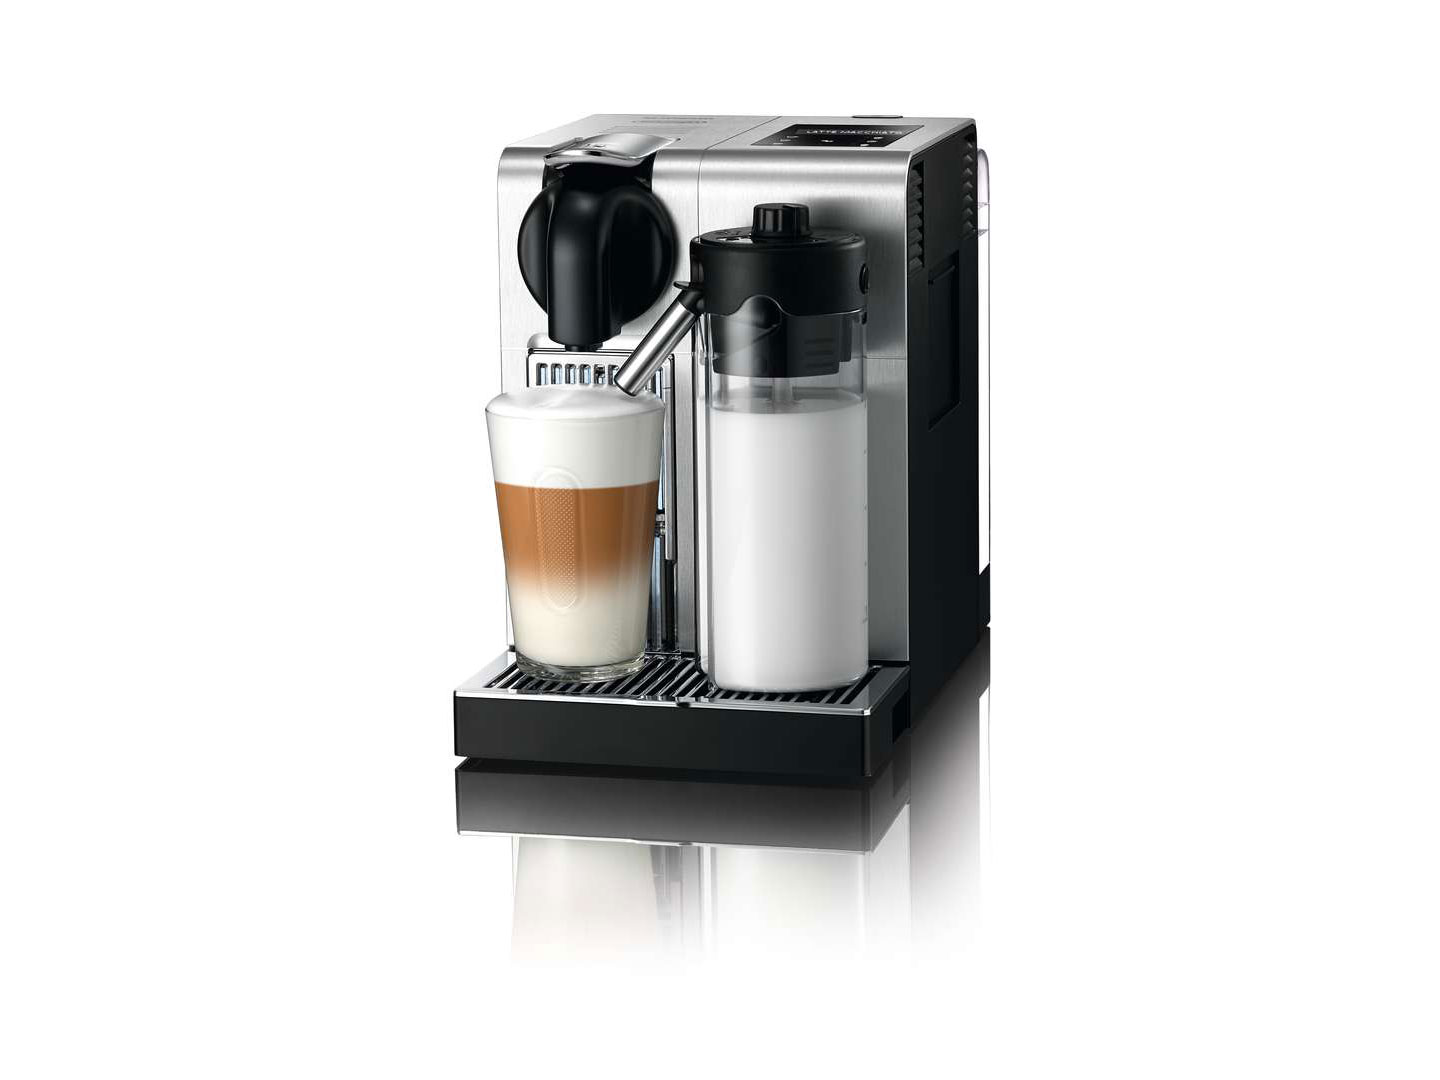 delonghi lattissima pro nespresso single serve espresso machine. Black Bedroom Furniture Sets. Home Design Ideas